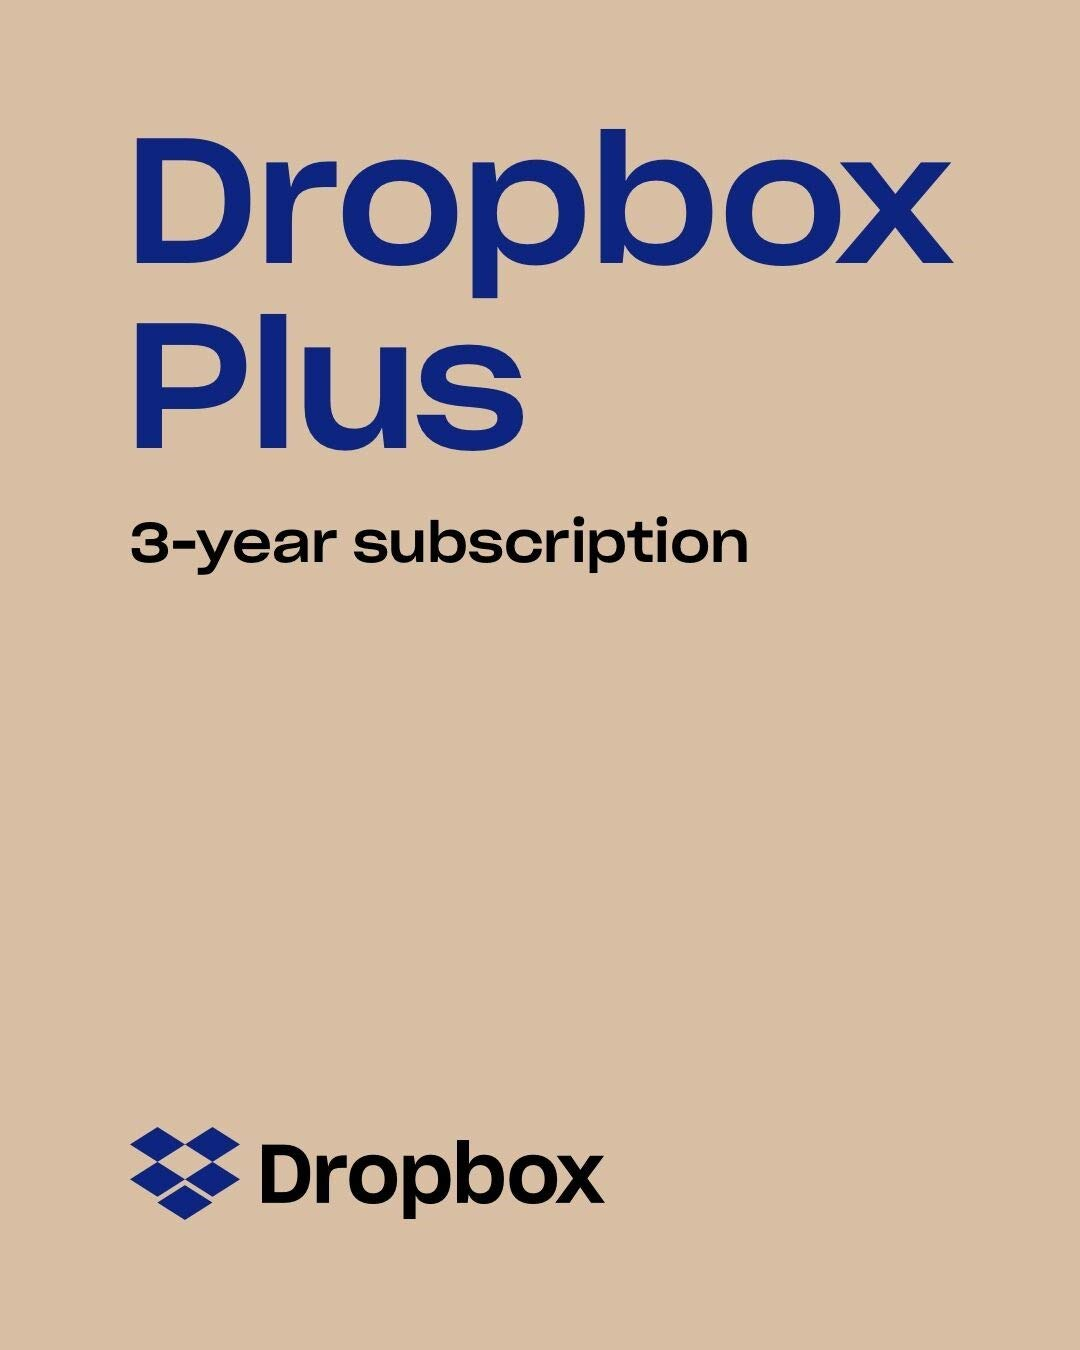 Dropbox Plus - 2 TB of Storage for 3 Years (Upgrade from Dropbox Basic 2 GB) [Online Code] [PC/Mac Online Code] by Dropbox